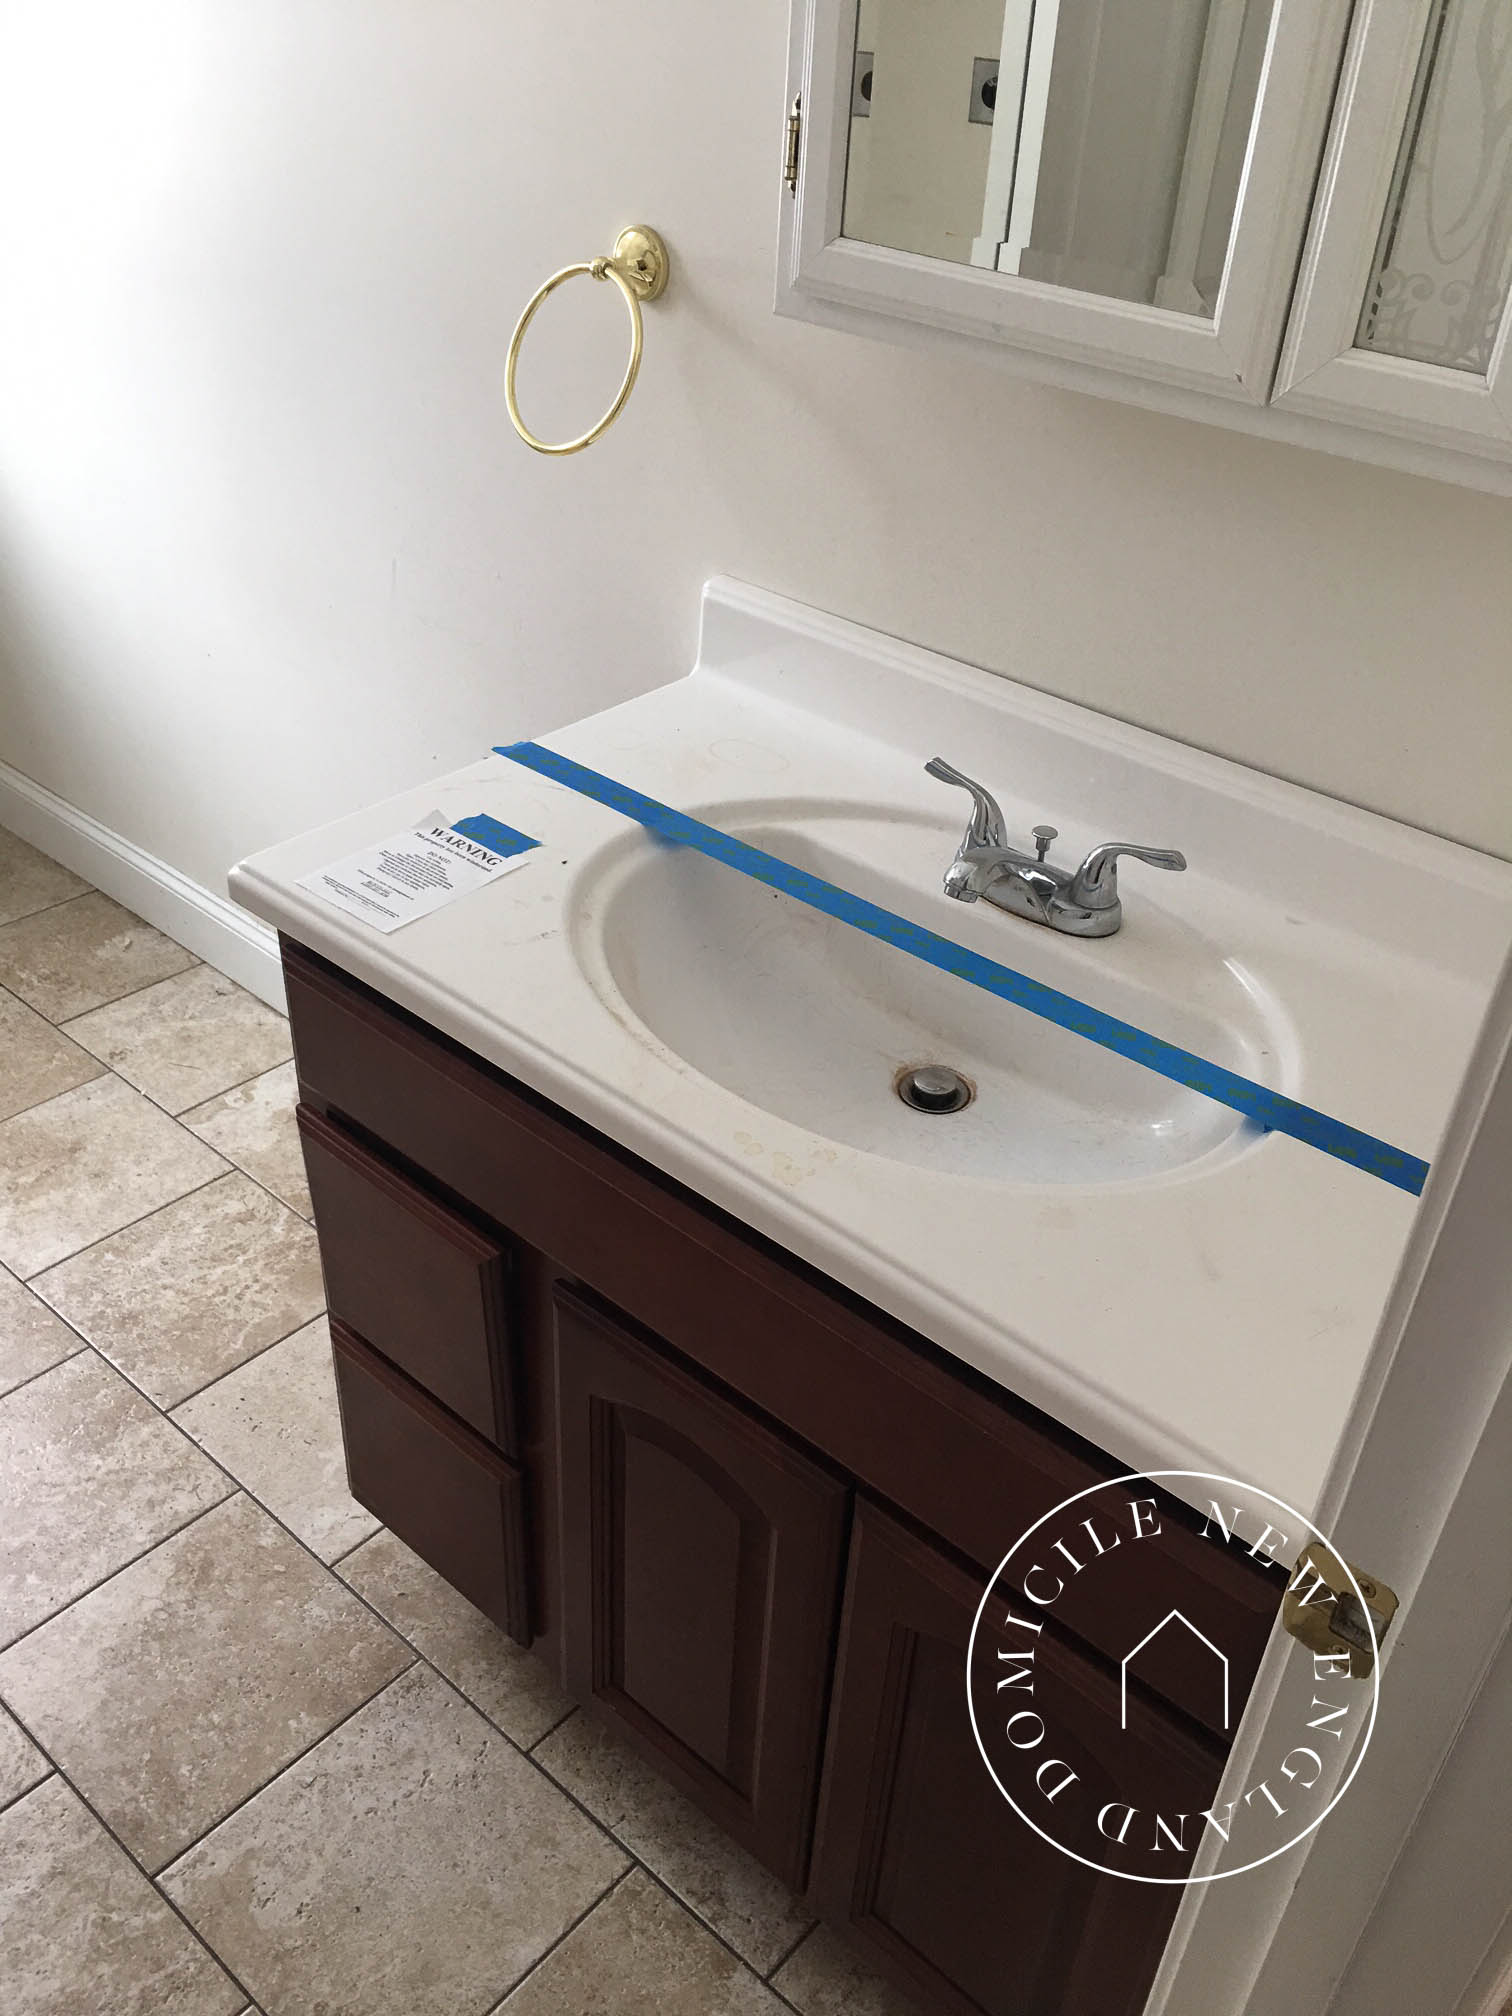 Great Before We Even Closed On The House I Had Made Up My Mind That The Whole  Room Itself Would Be Designed Around A Vintage 4 Foot Double Basin  Soapstone Sink.